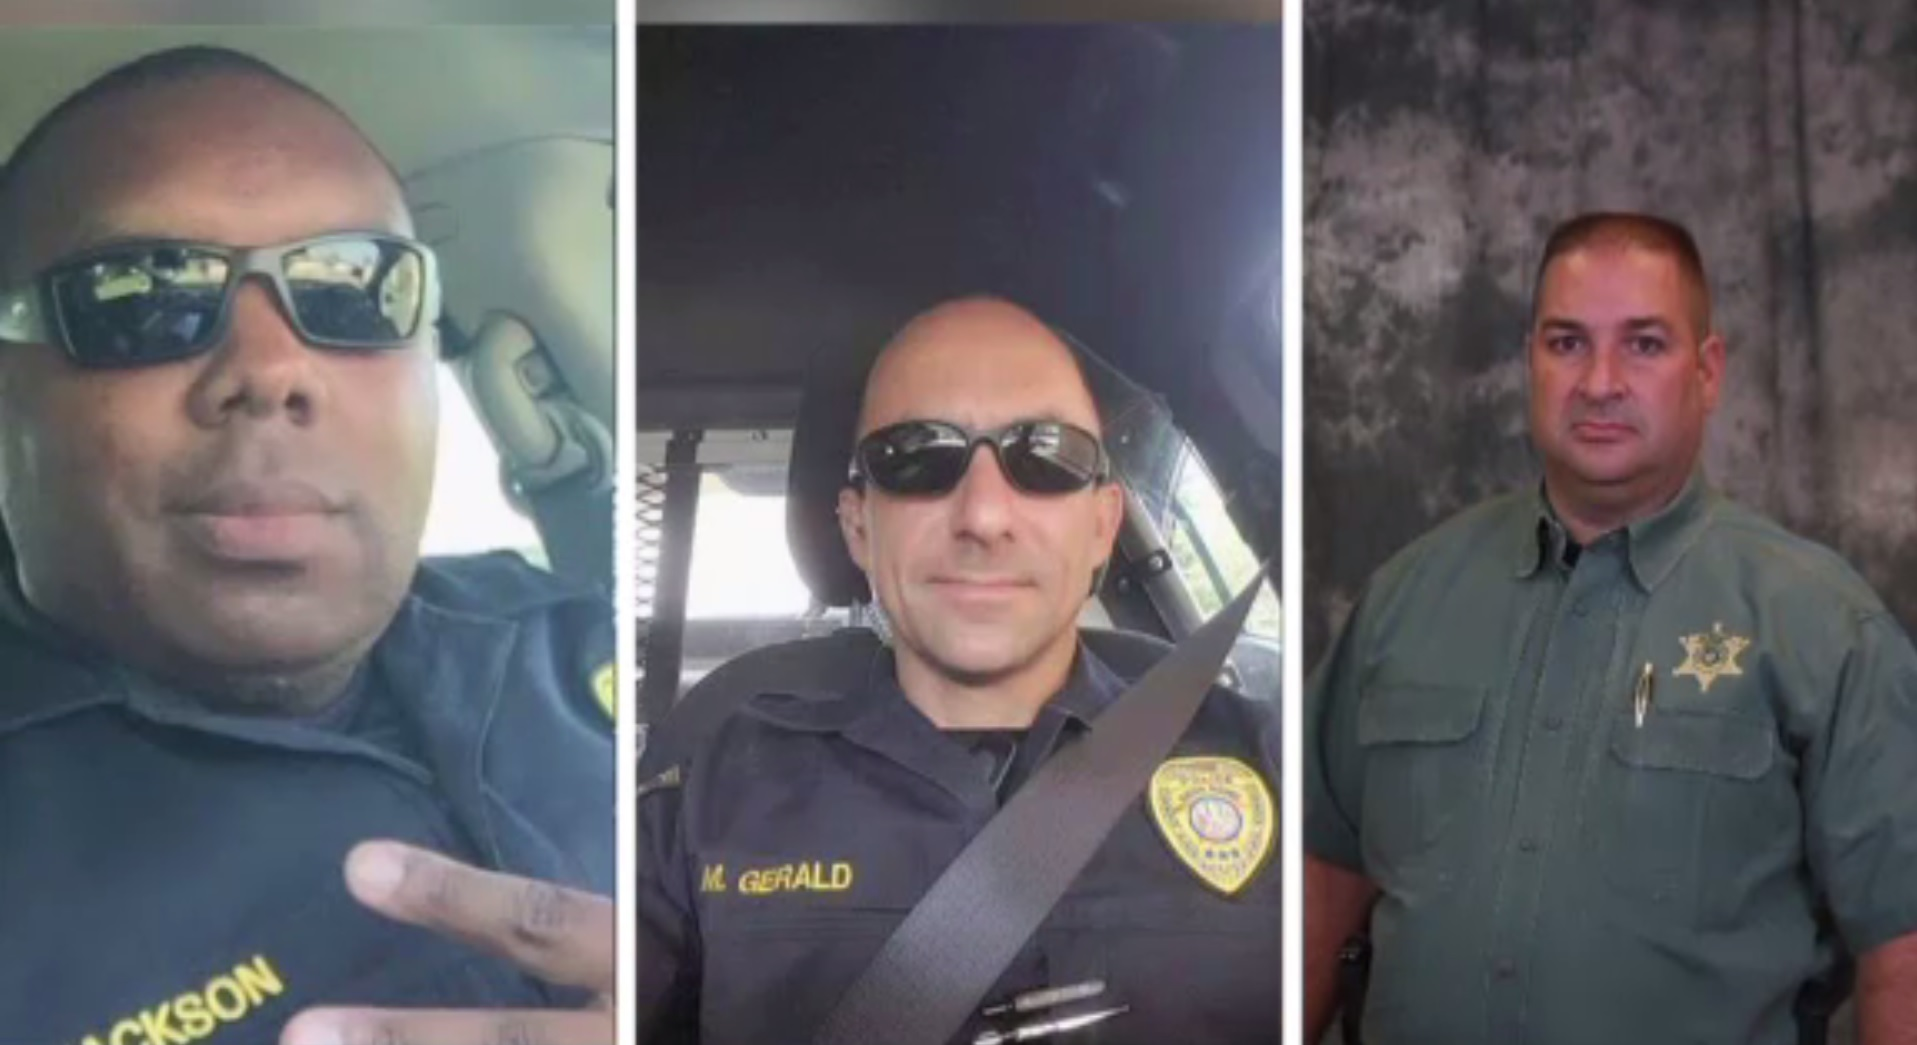 Officers killed in Baton Rouge shooting